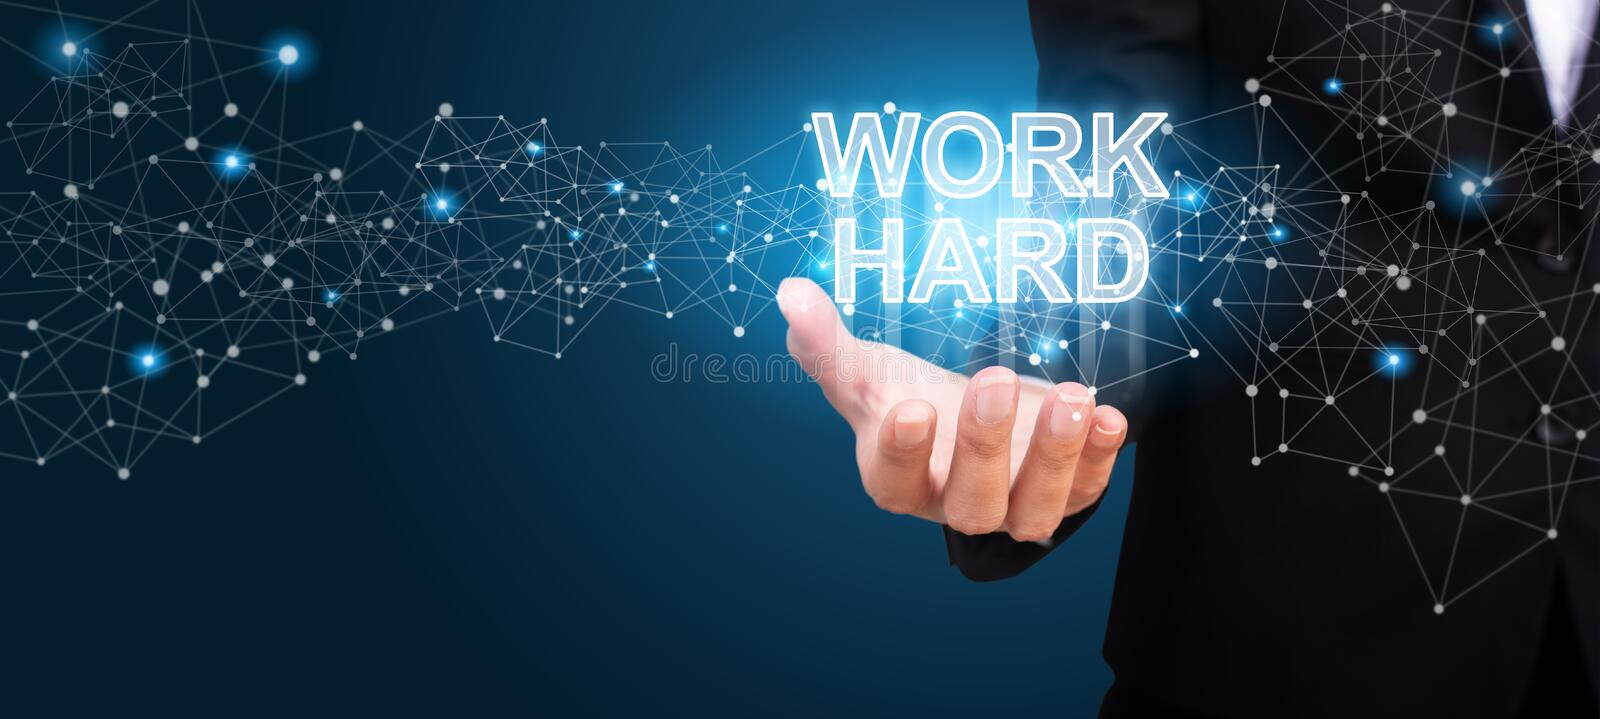 Work Hard in the hand of business. Work Hard concept stock photography